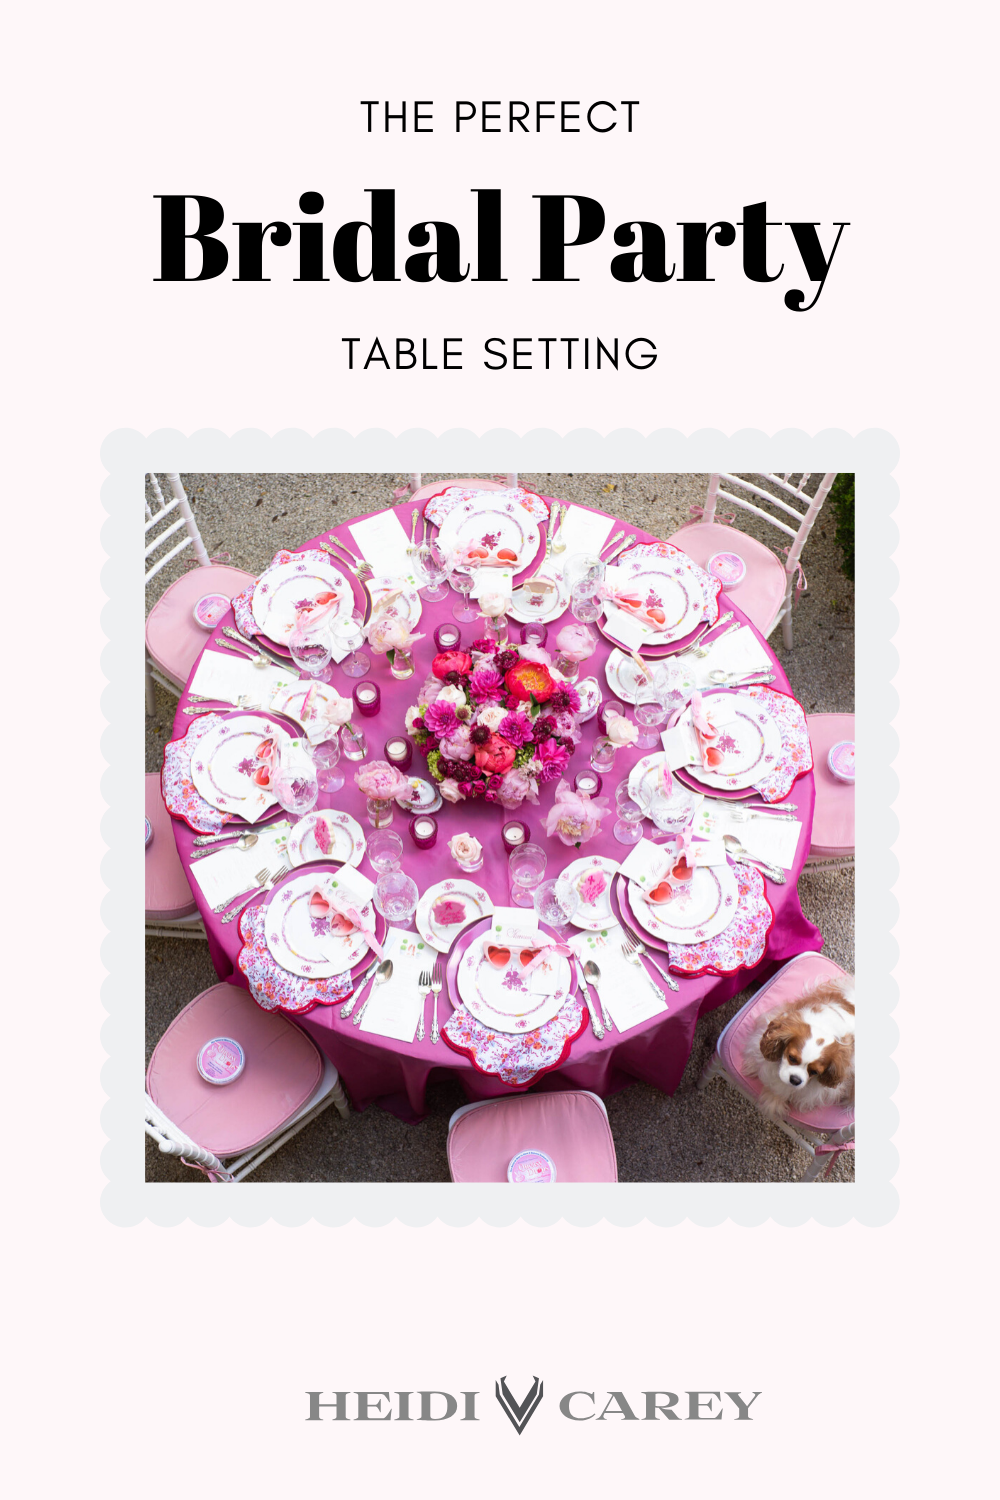 Stylish bridal party Table setting by Heidi Carey. Shop our Pink Floral Scalloped Napkins for your perfect bridal shower. #HeidiCarey #TableSetting #MatronOfHonor #BridalShower #WeddingDay #WeddingGift #BridalGift